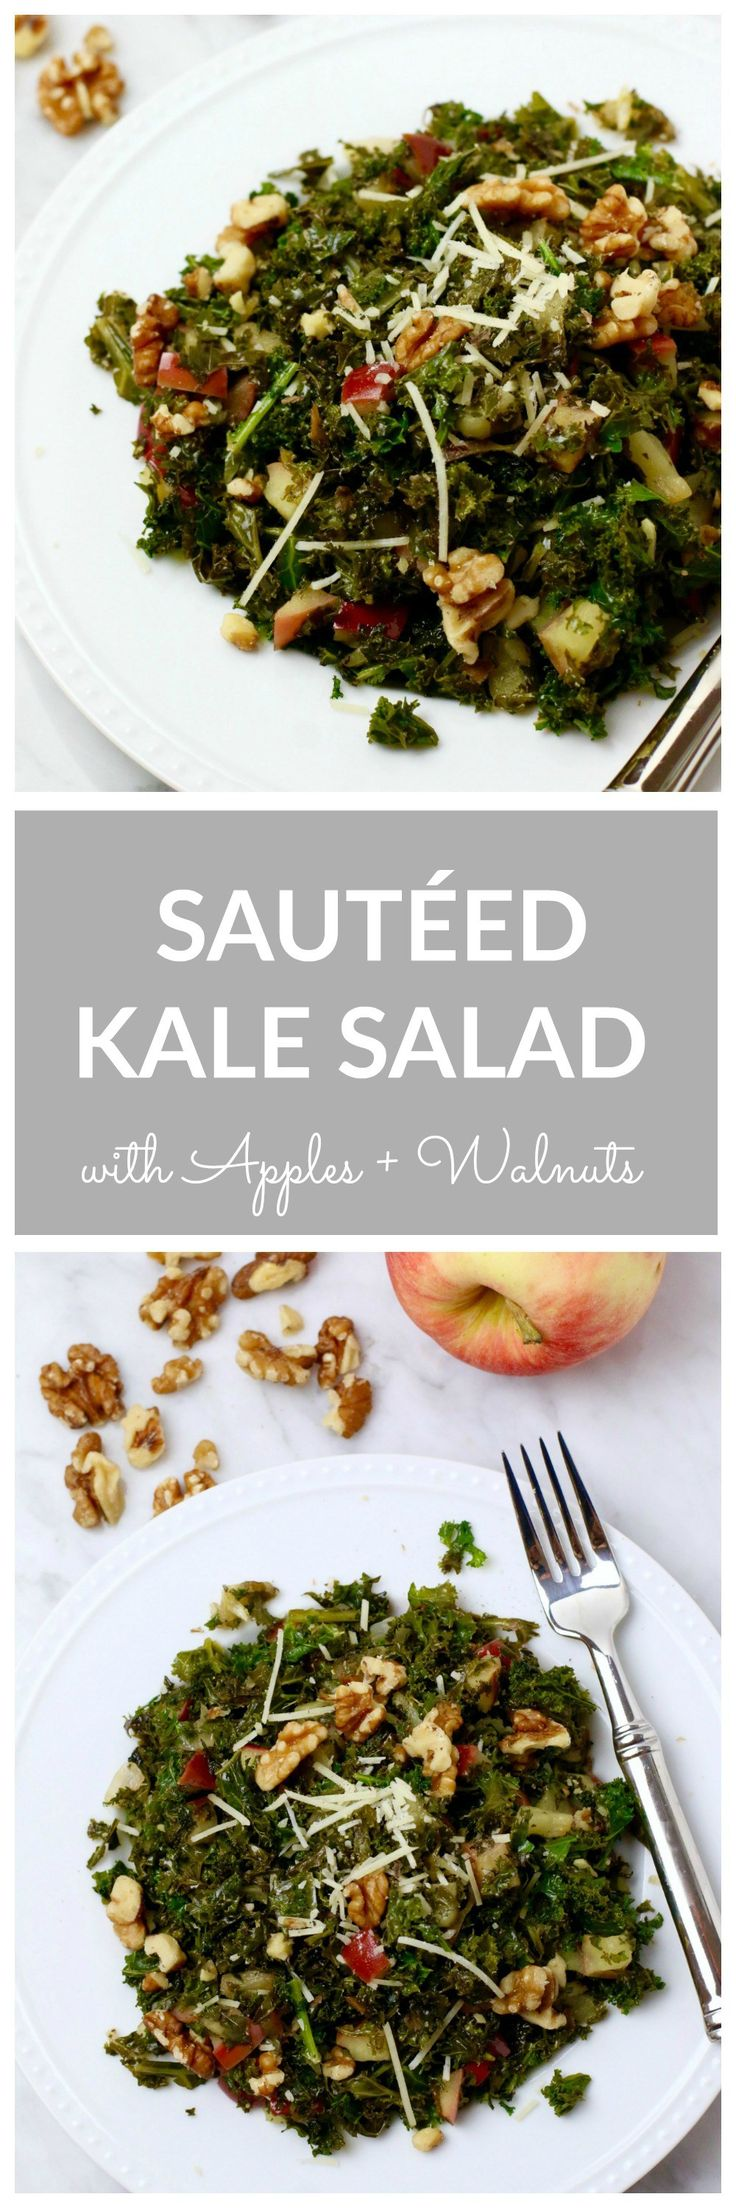 Sautéed Kale Salad with apples and walnuts. A delicious warm fall salad that is perfect for cold weather. Packed with nutritious ingredients like kale, walnuts, and extra virgin olive oil. Quick and e (Fall Recipes Healthy)